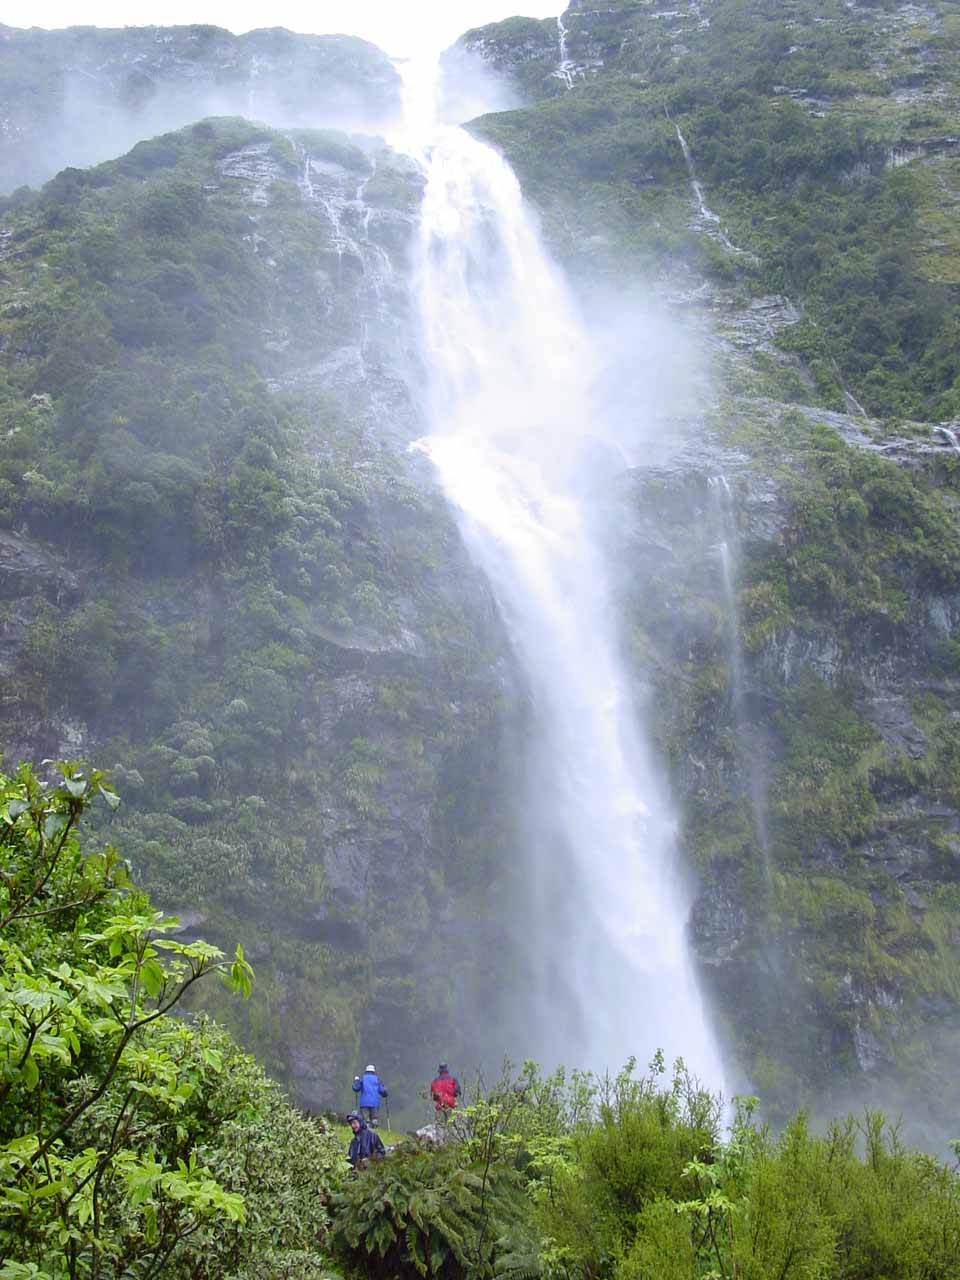 Some people being dwarfed by Sutherland Falls even with the forced perspective